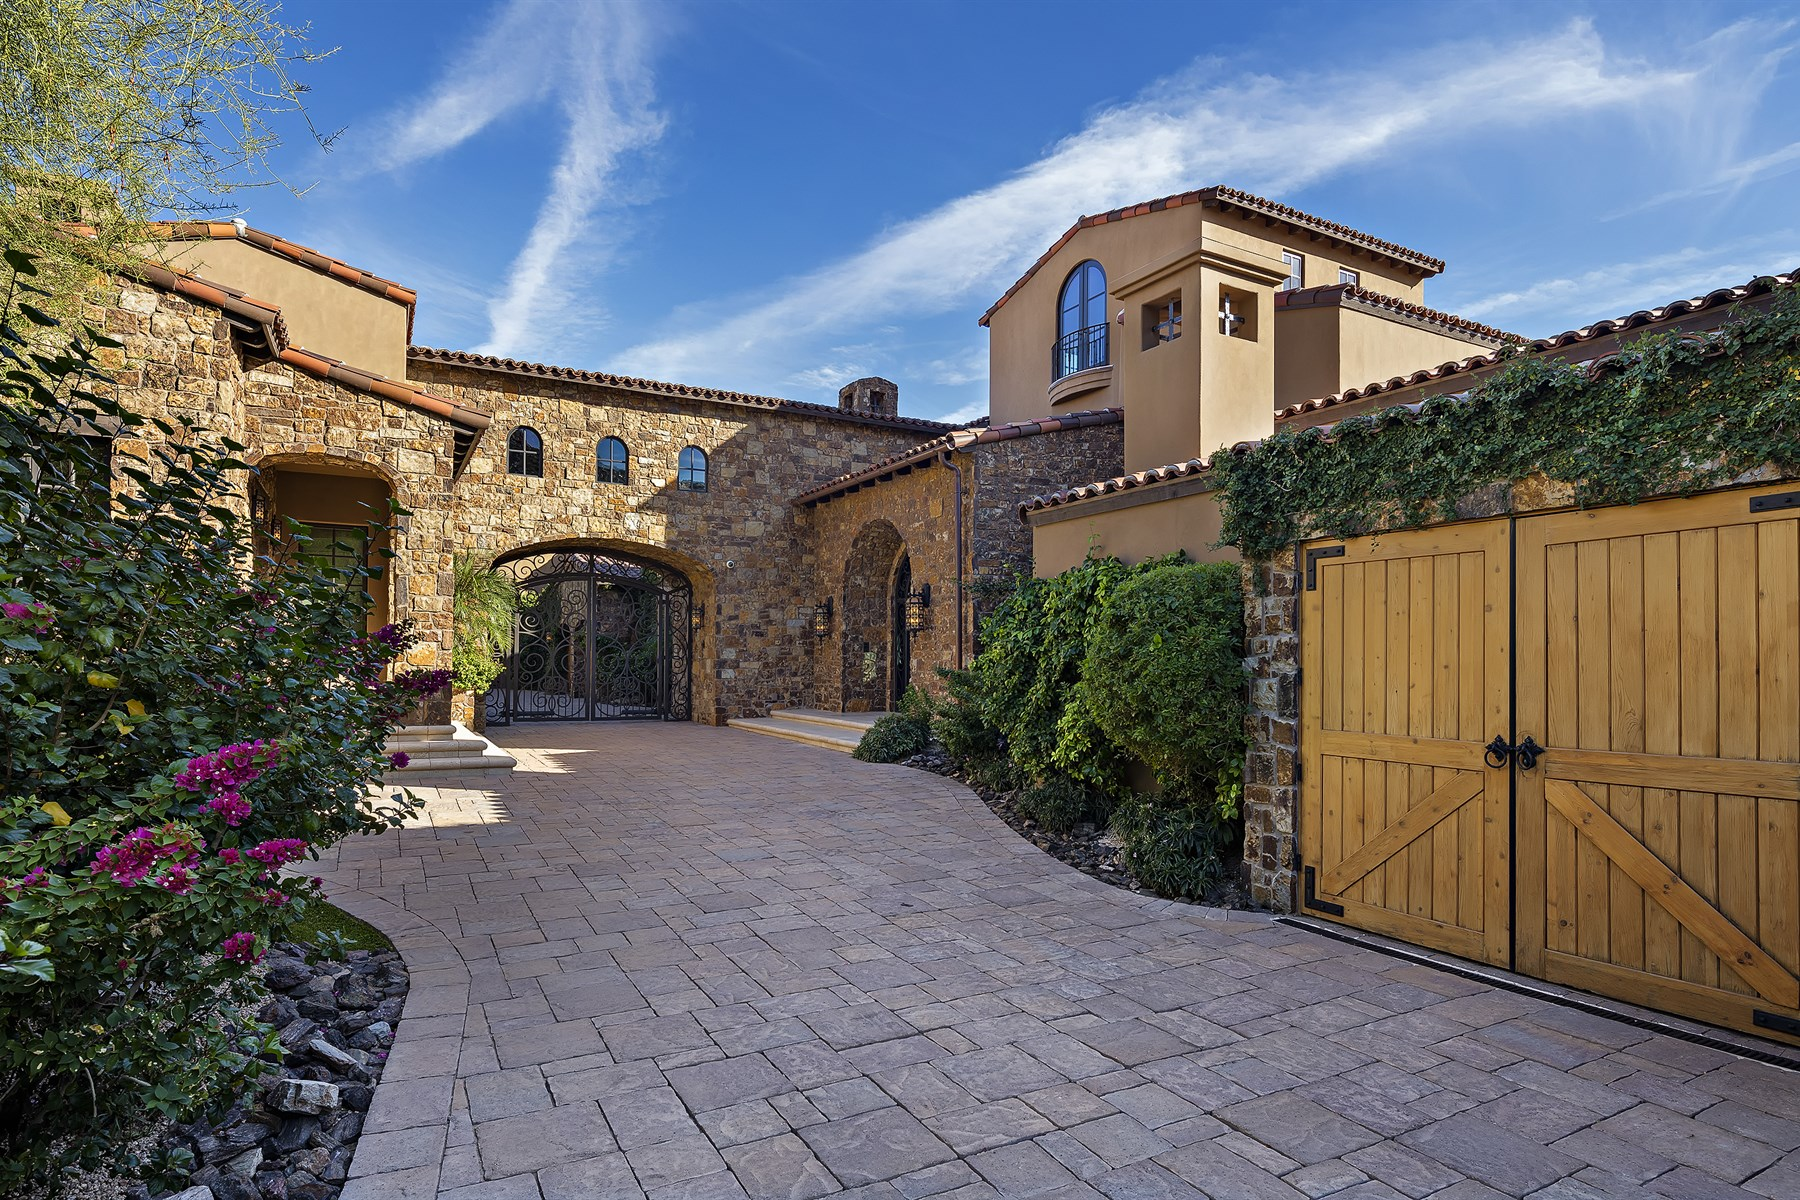 Einfamilienhaus für Verkauf beim Exquisite European Manor in The Exclusive Upper Canyon at Silverleaf 20913 N 104th Street #1488 Scottsdale, Arizona, 85255 Vereinigte Staaten